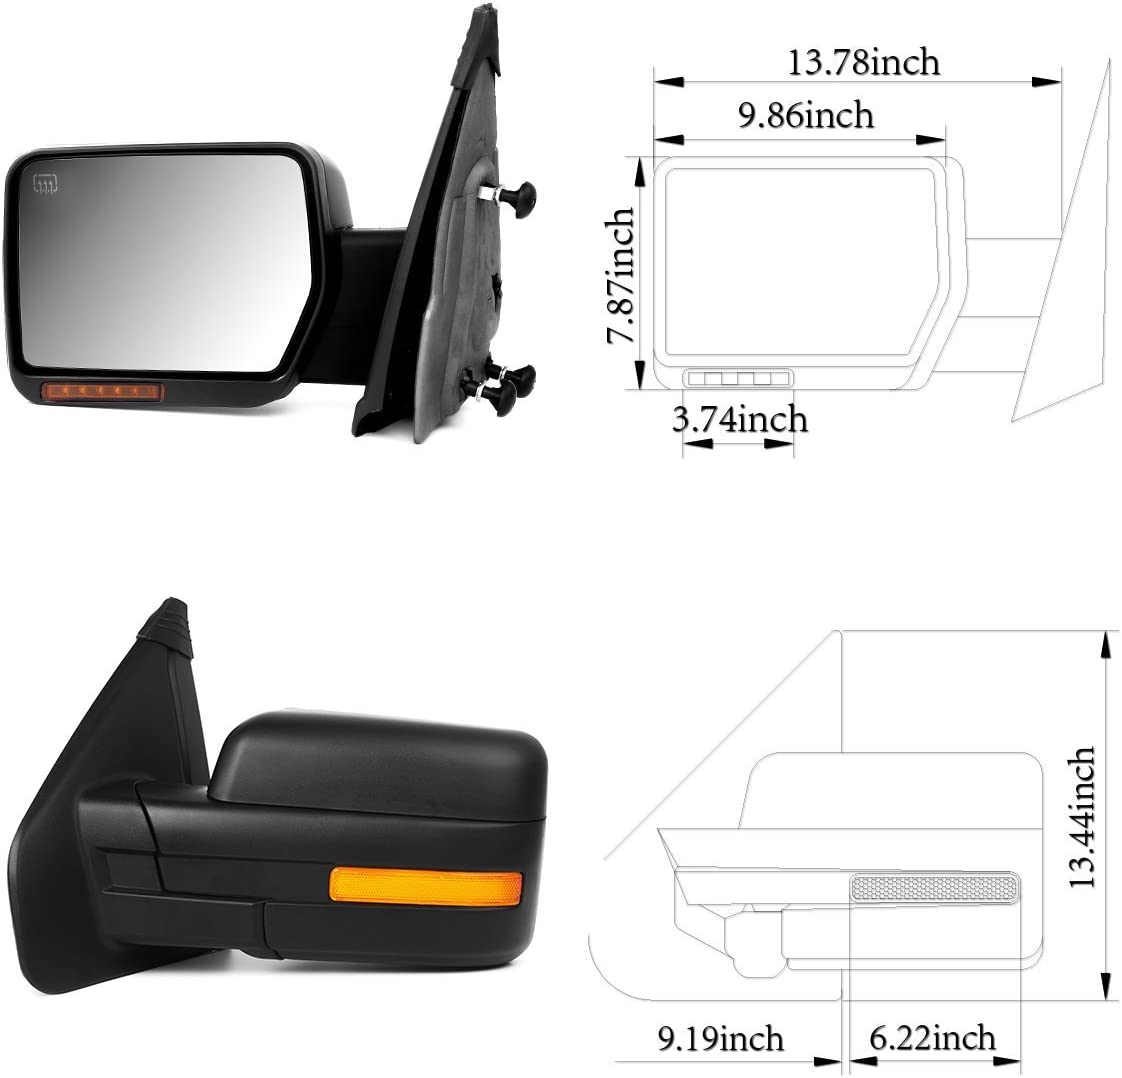 Scitoo Towing Mirrors fit Ford Exterior Accessories Mirrors fit 2007-2014 Ford F-150 Truck with Amber Turn Signal and Puddle Light Heated Power Controlling and Manual Folding Pair